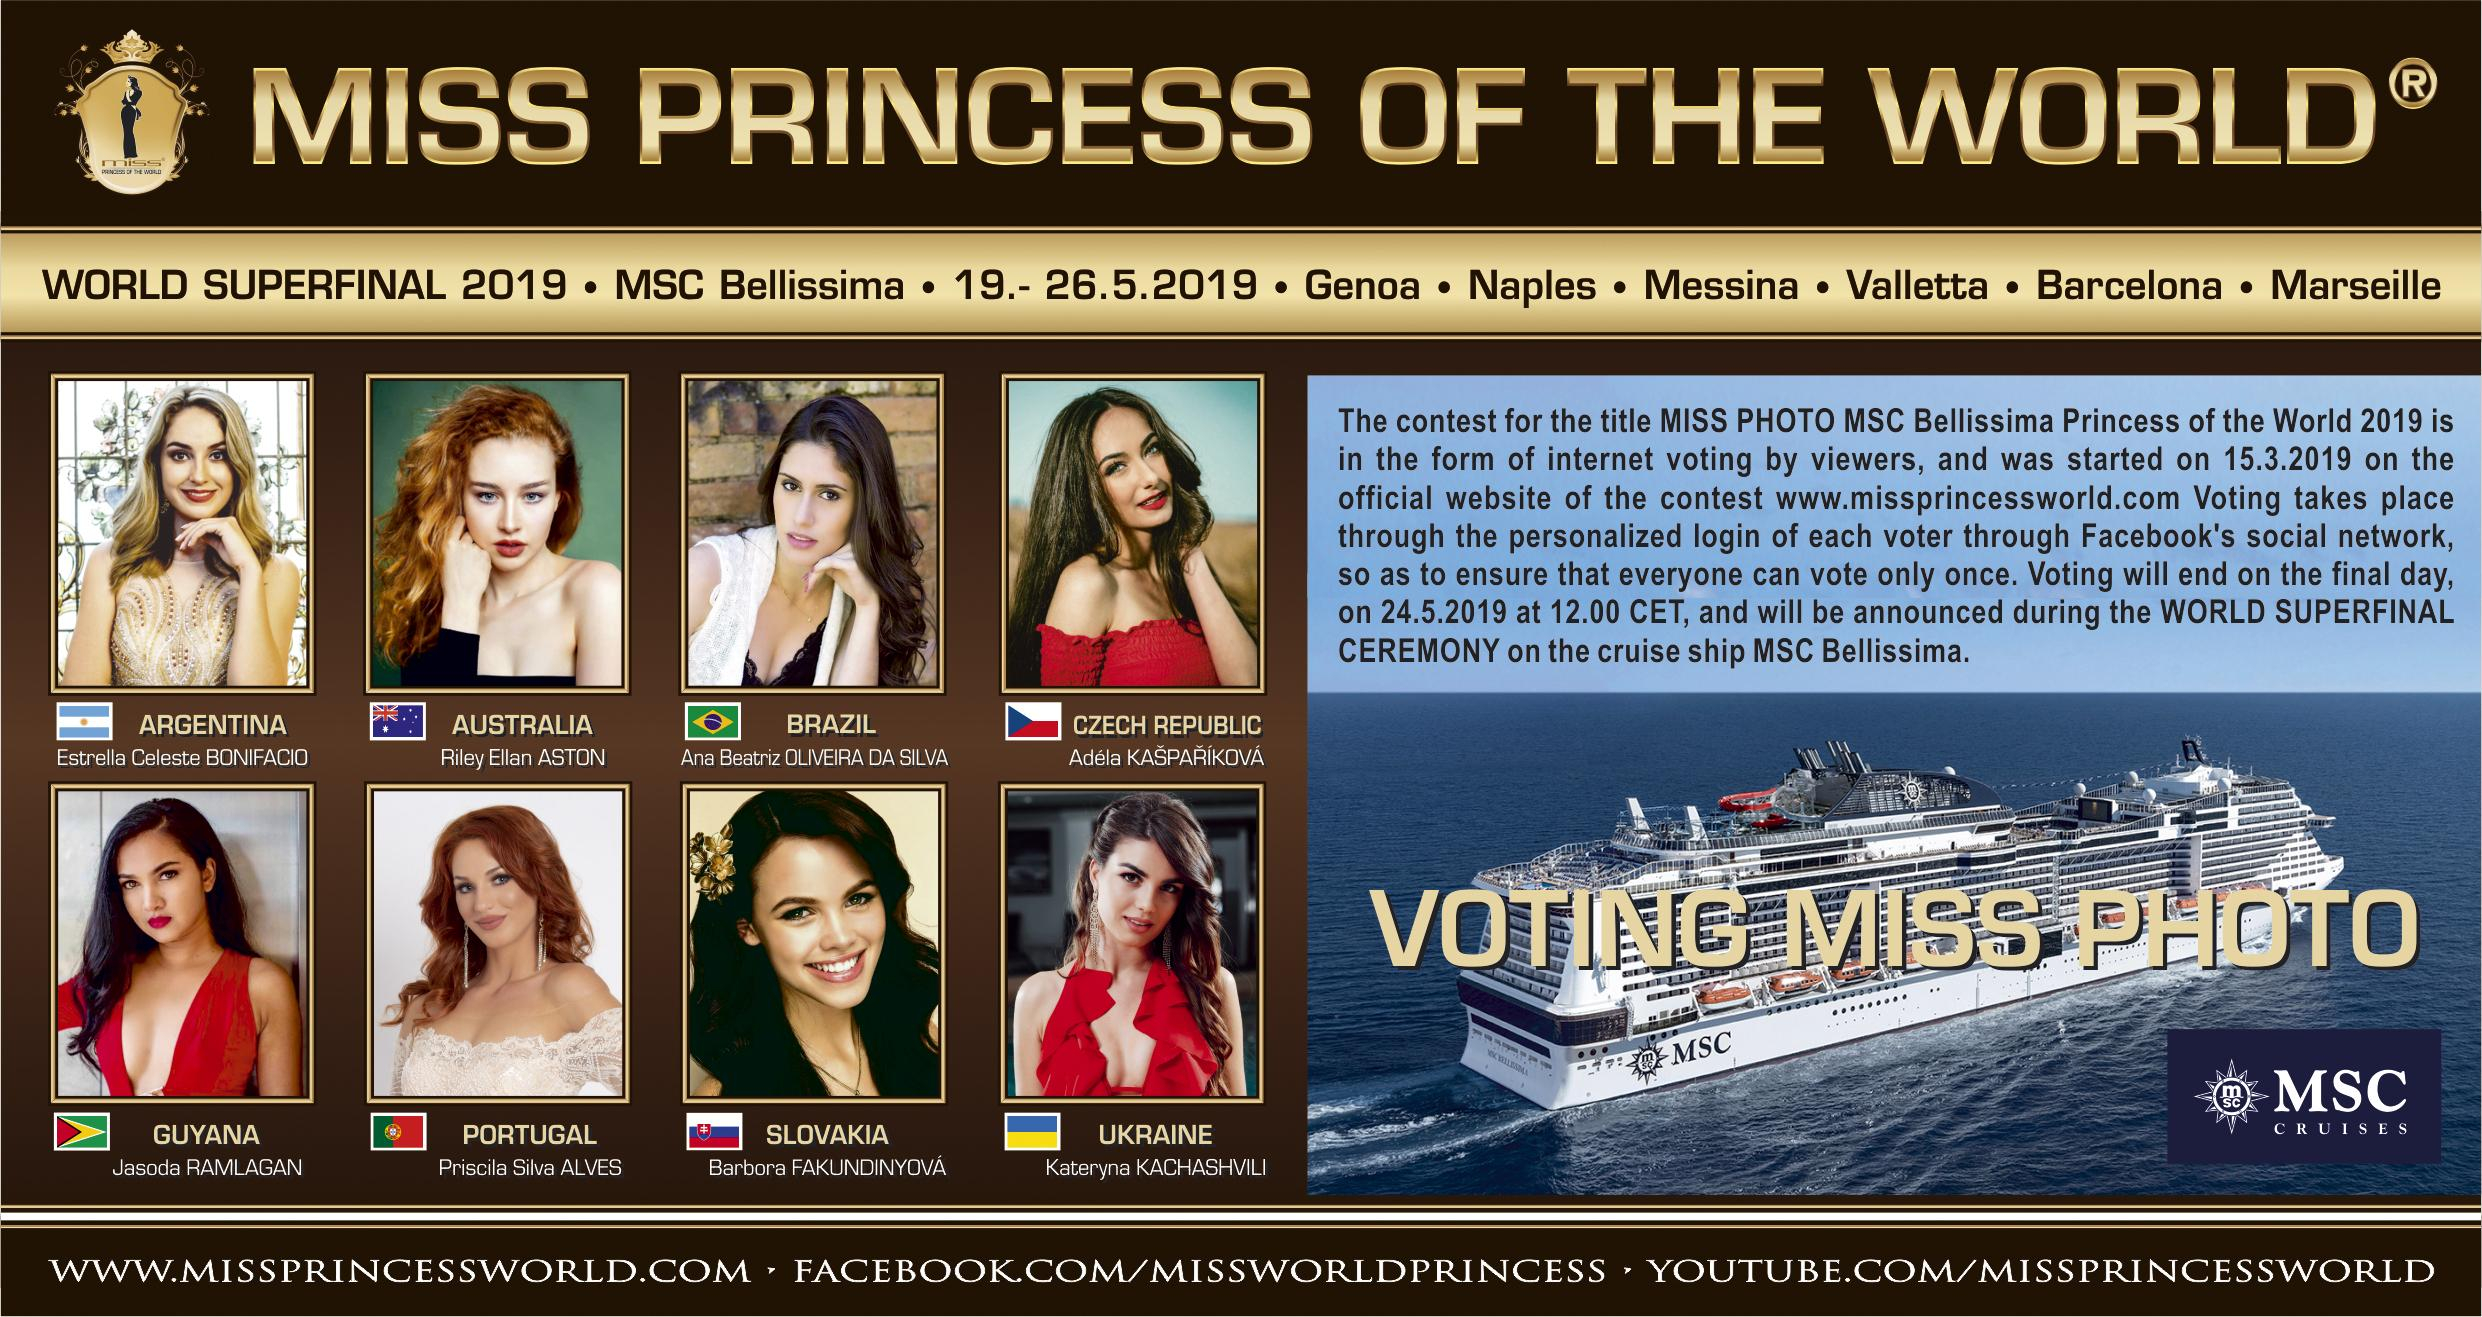 VOTING MISS PHOTO of Princess of the World 2019